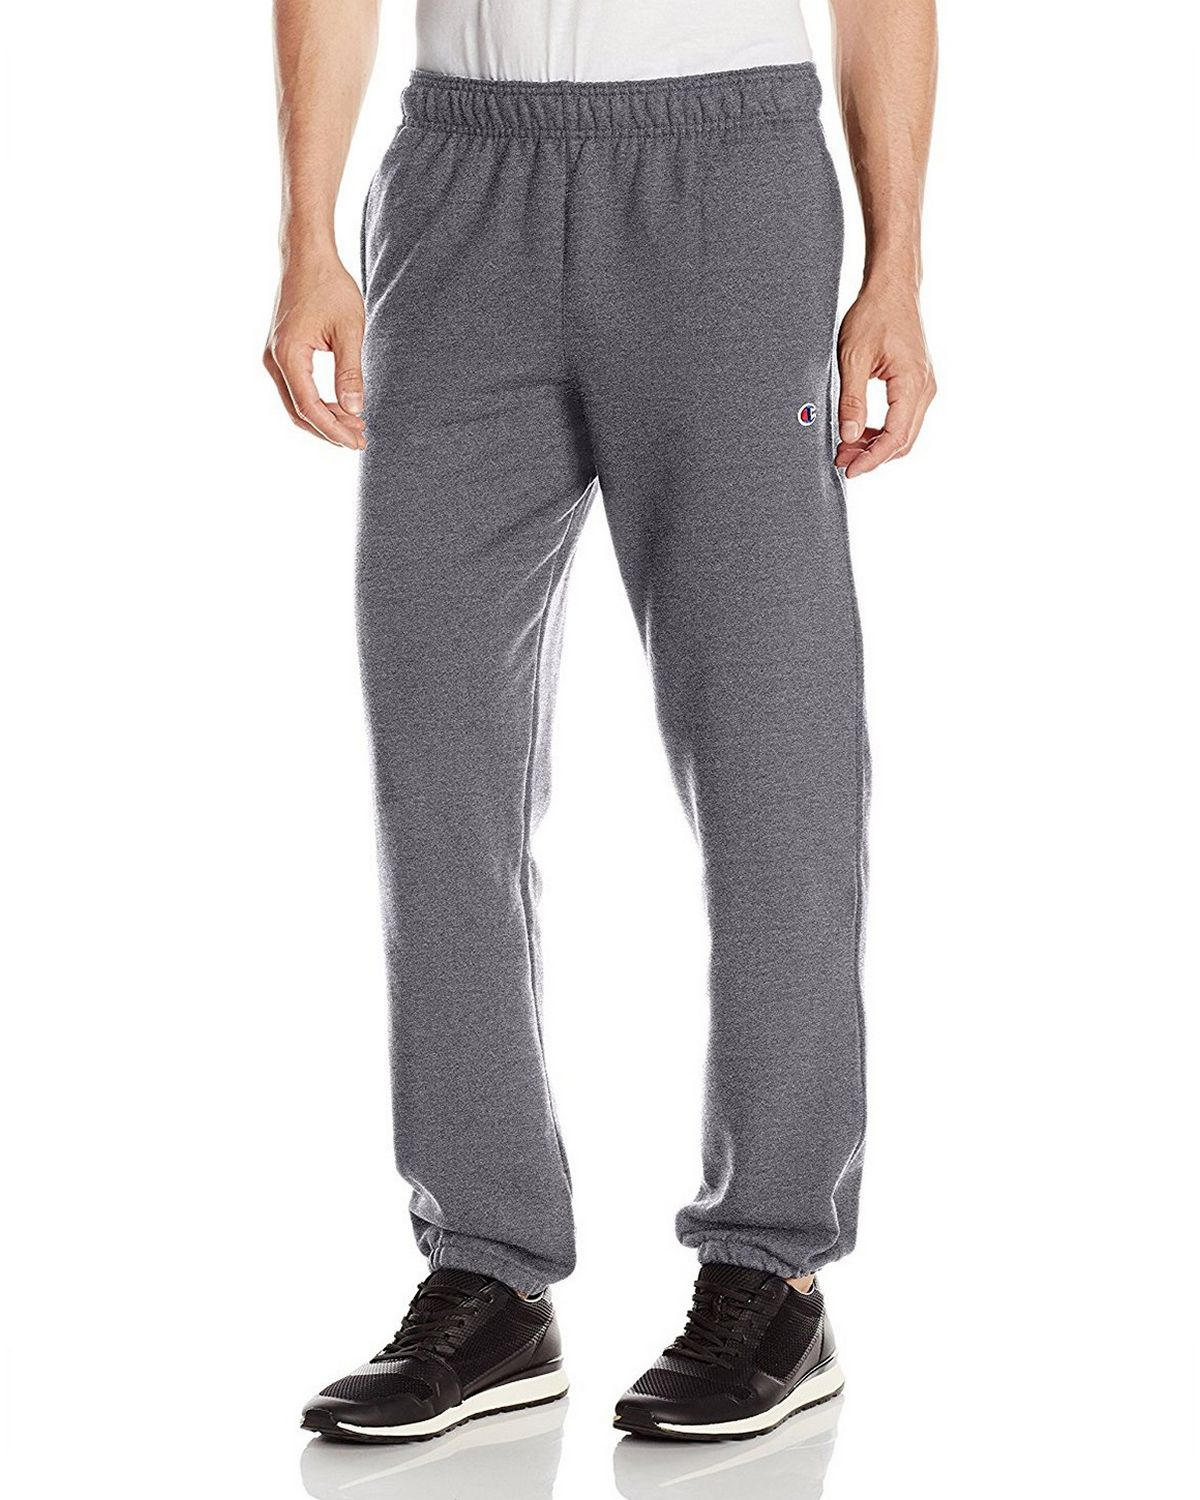 Champion Men's Powerblend Relaxed Bottom Fleece Pant, Granite Heather, M P0894